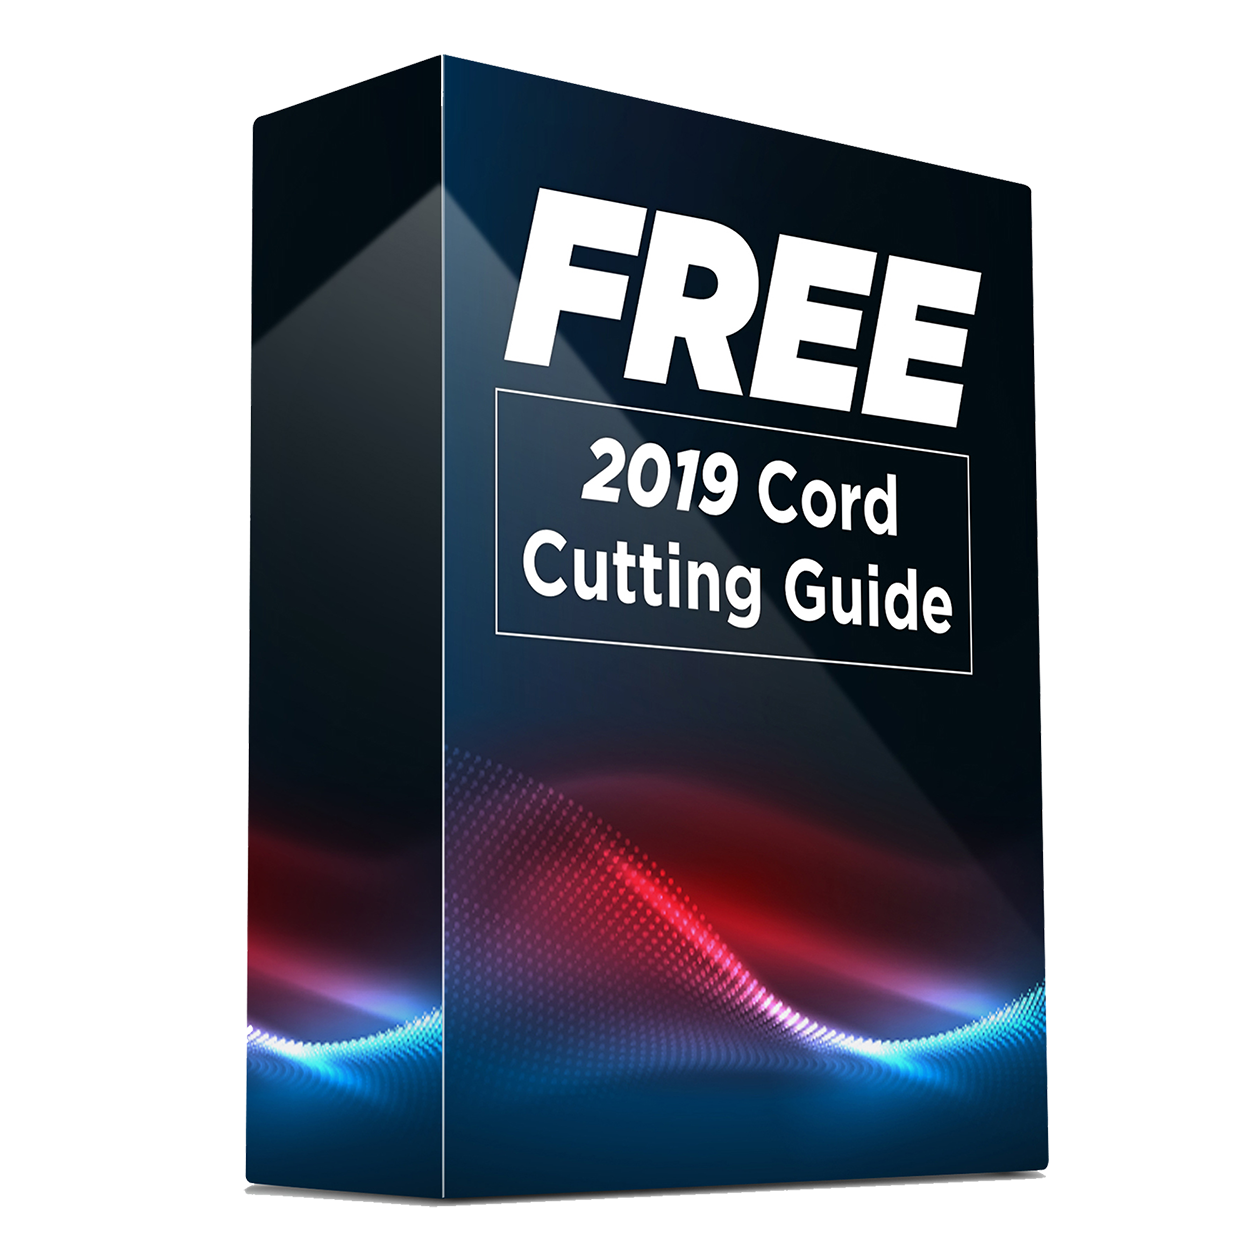 2019 Cord Cutting Guide